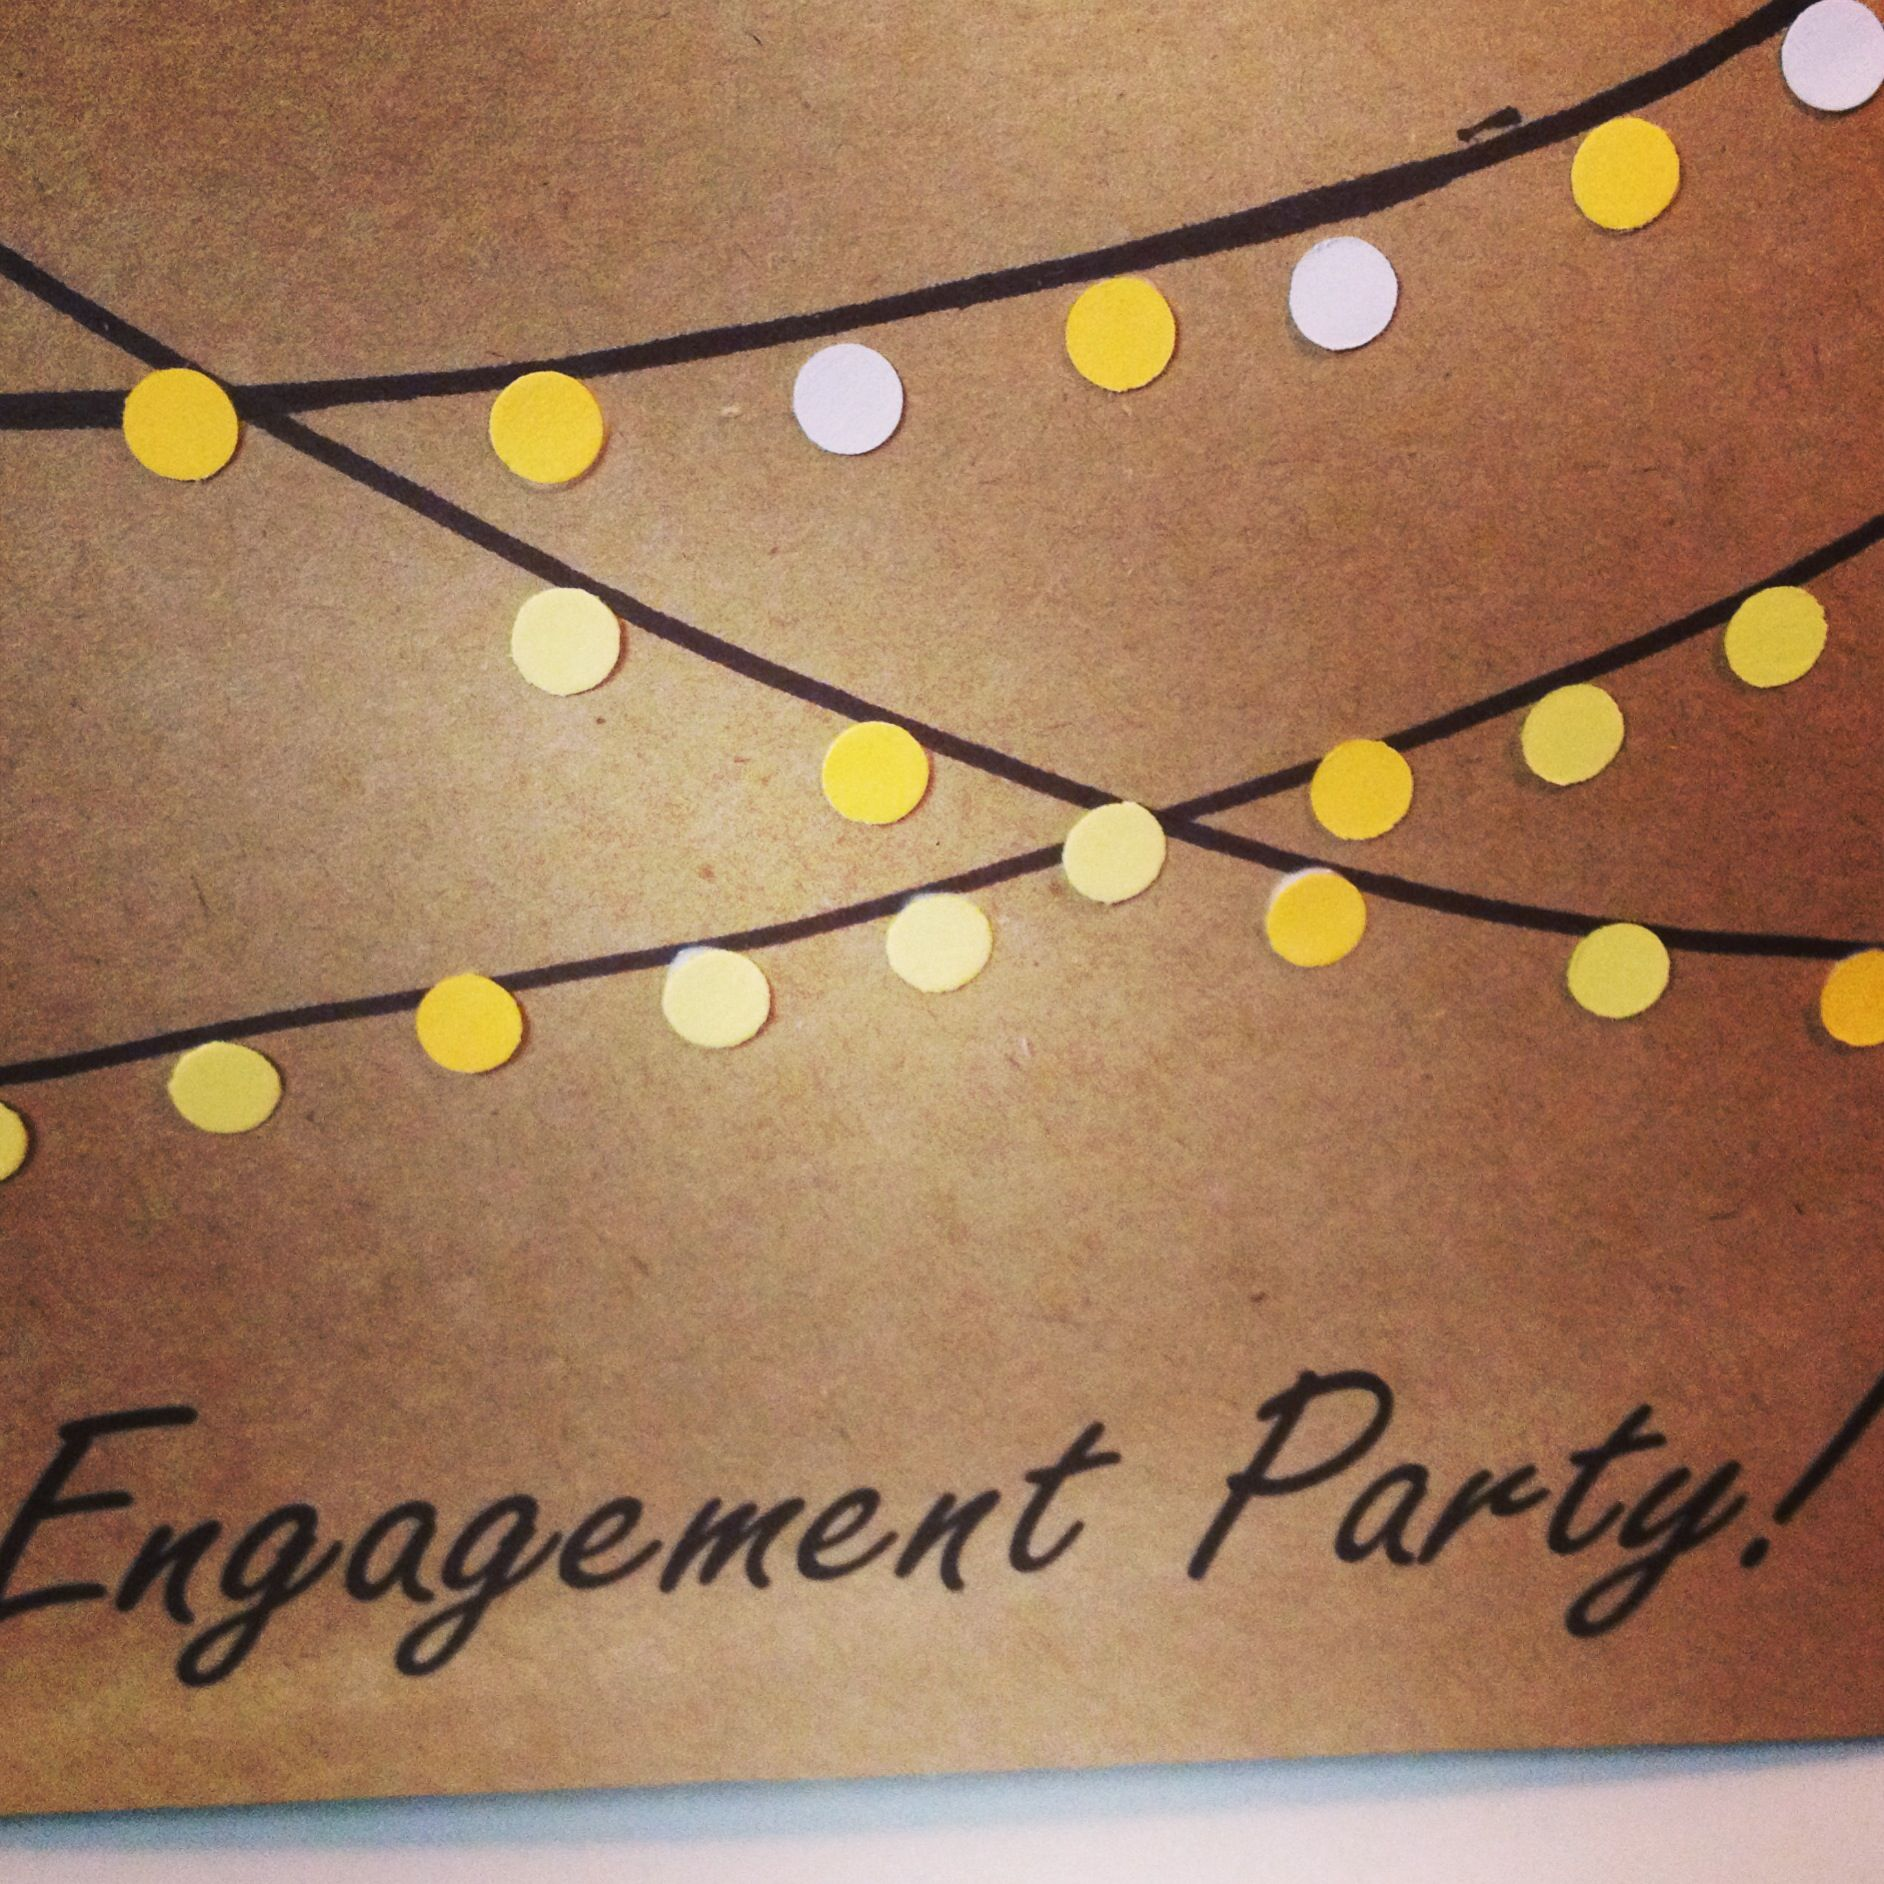 Handmade engagement party invites- outdoor themed | Engagement ...